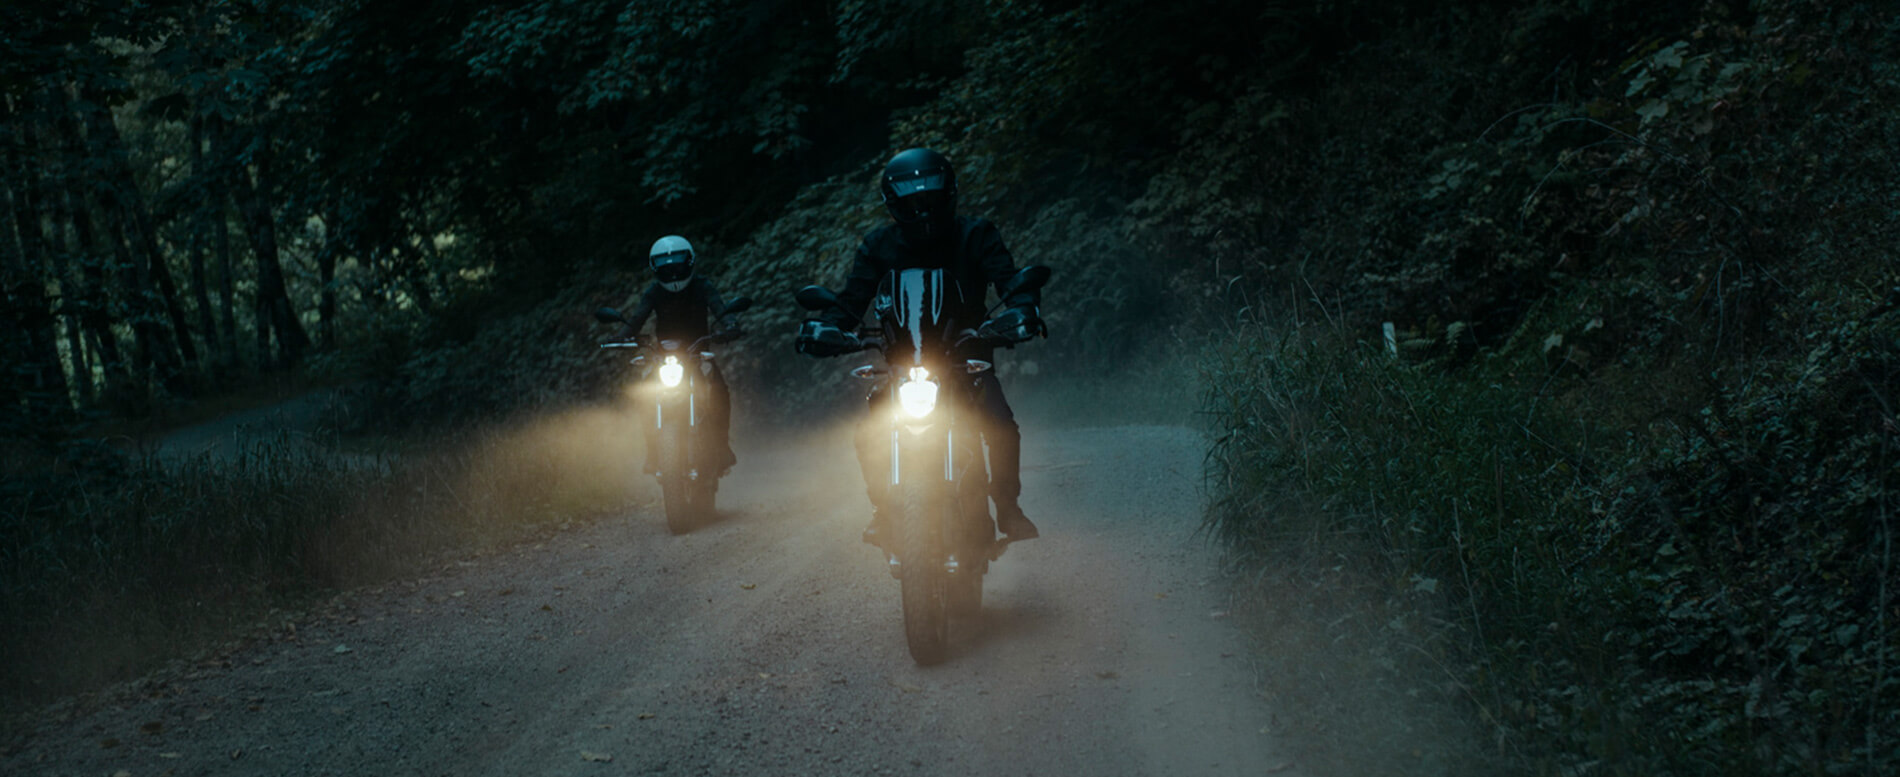 Zero Motorcycles models starting as low as $133/month. Contact your local Zero Motorcycles dealer for details.